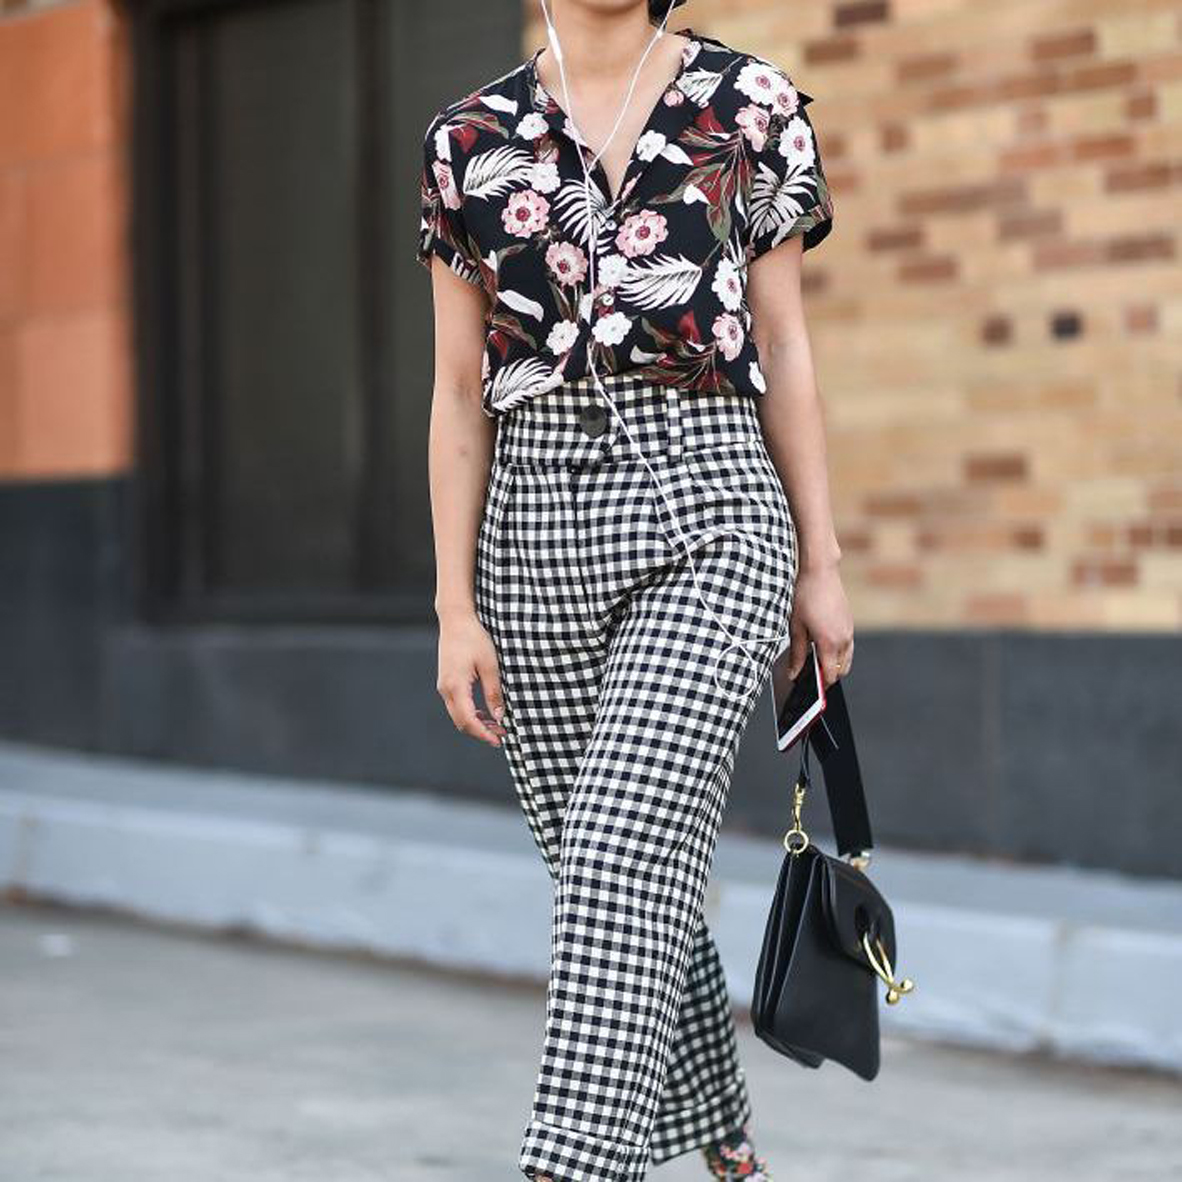 Gingham Pants with Floral printed top